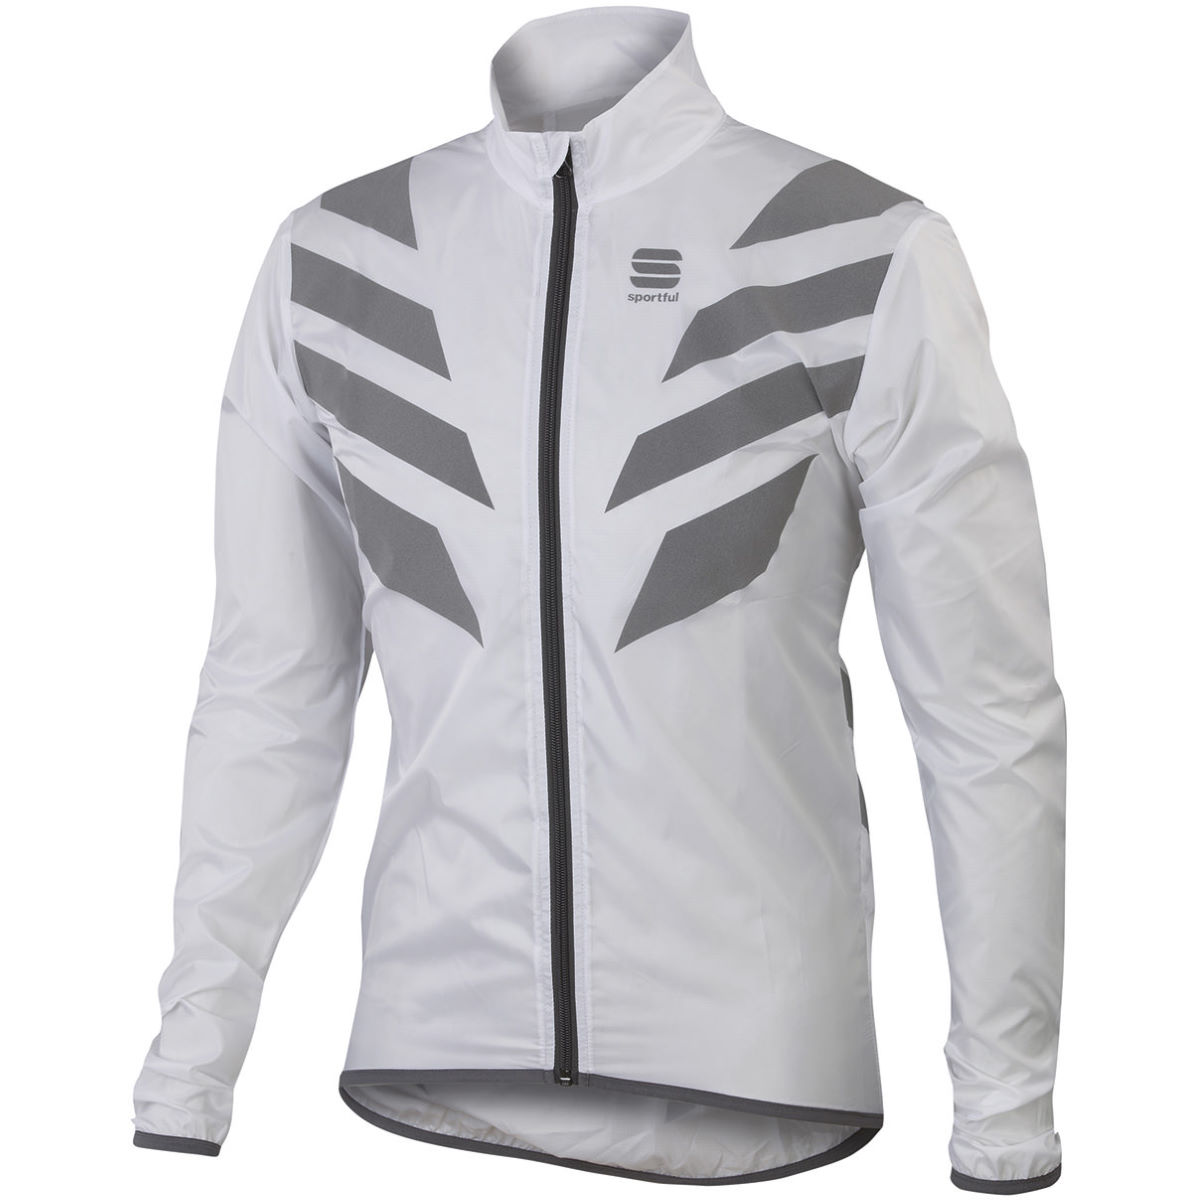 Veste Sportful Reflex - 3XL Blanc Coupe-vents vélo